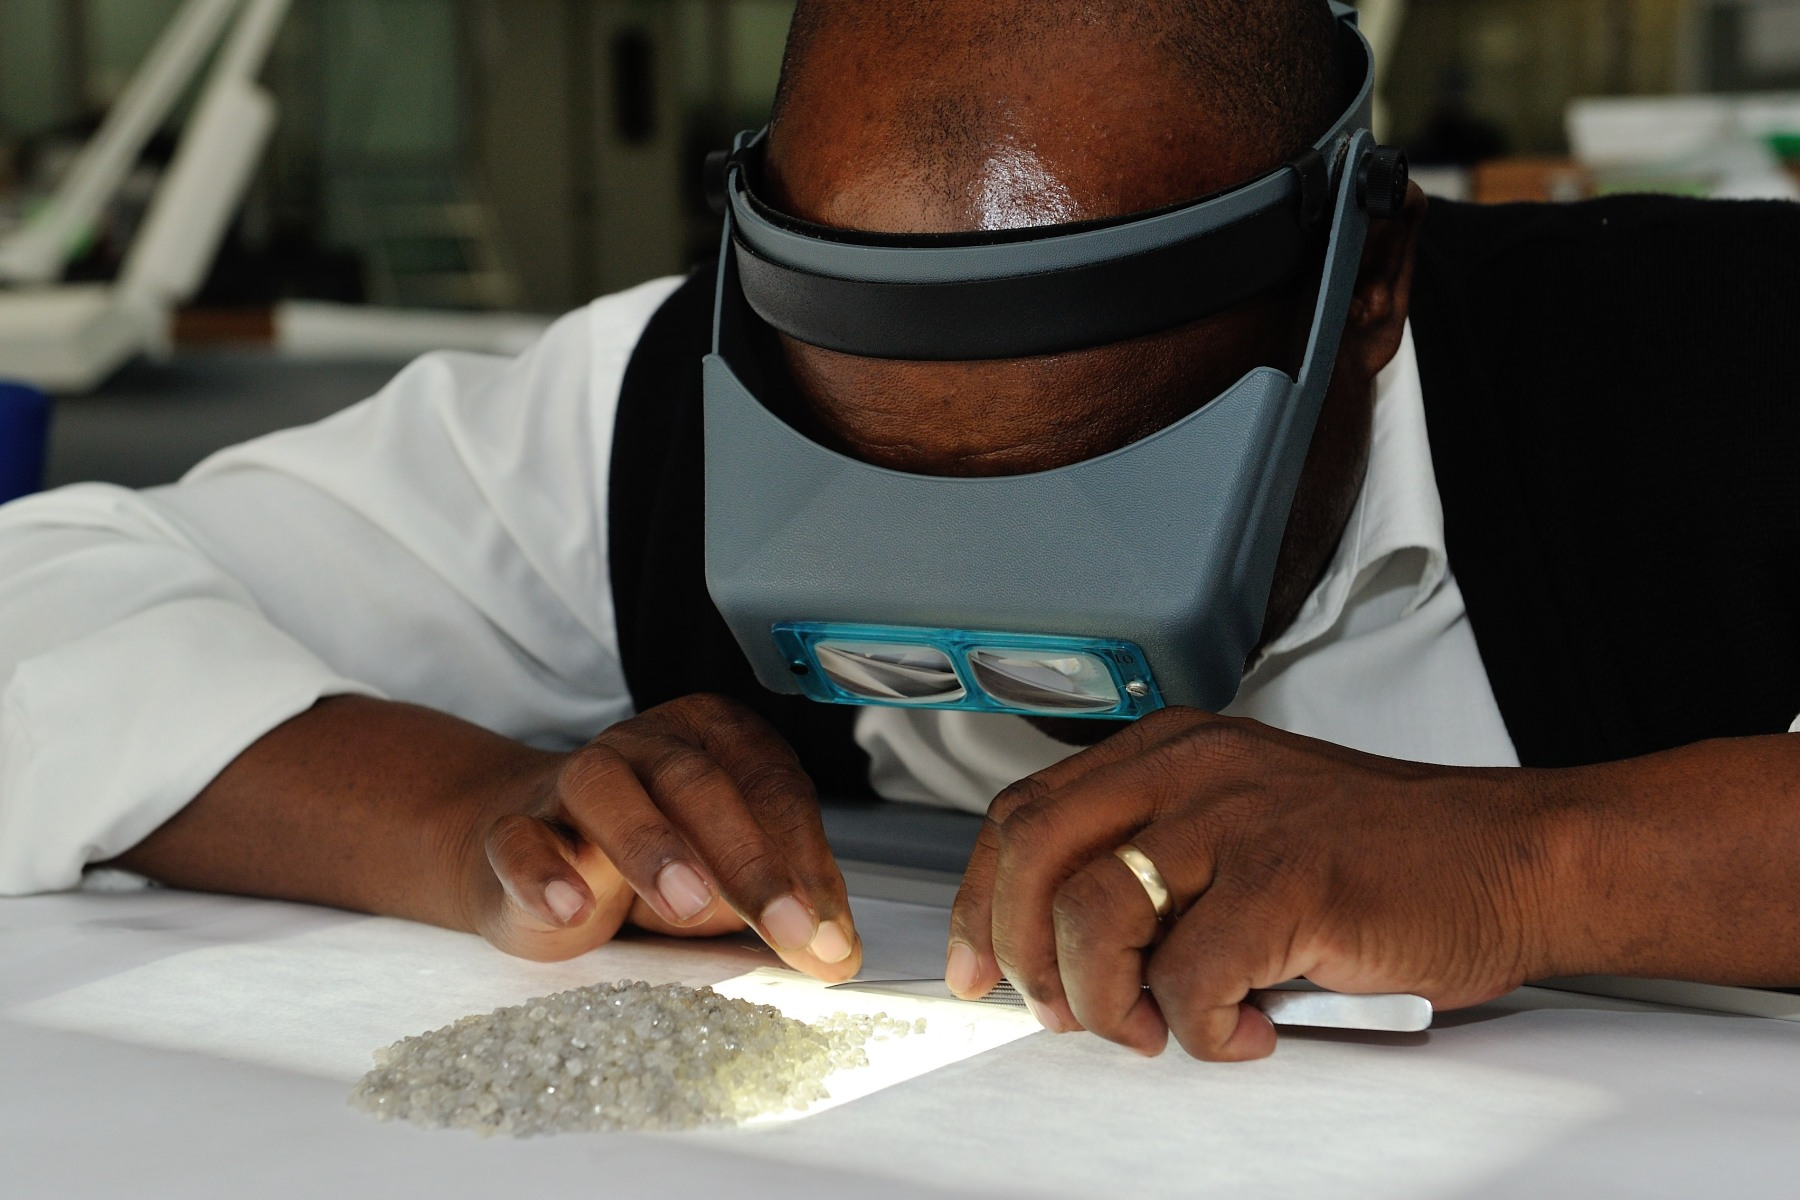 Their Excellencies, joined by the Honourable Onkokame Kitso Mokaila, Minister of Minerals, Energy and Water Resources, visited the Diamond Trading Company Botswana (DTCB) and saw first-hand how rough diamonds arriving from the mines are sorted into different categories according to their size, shape, quality and colour.